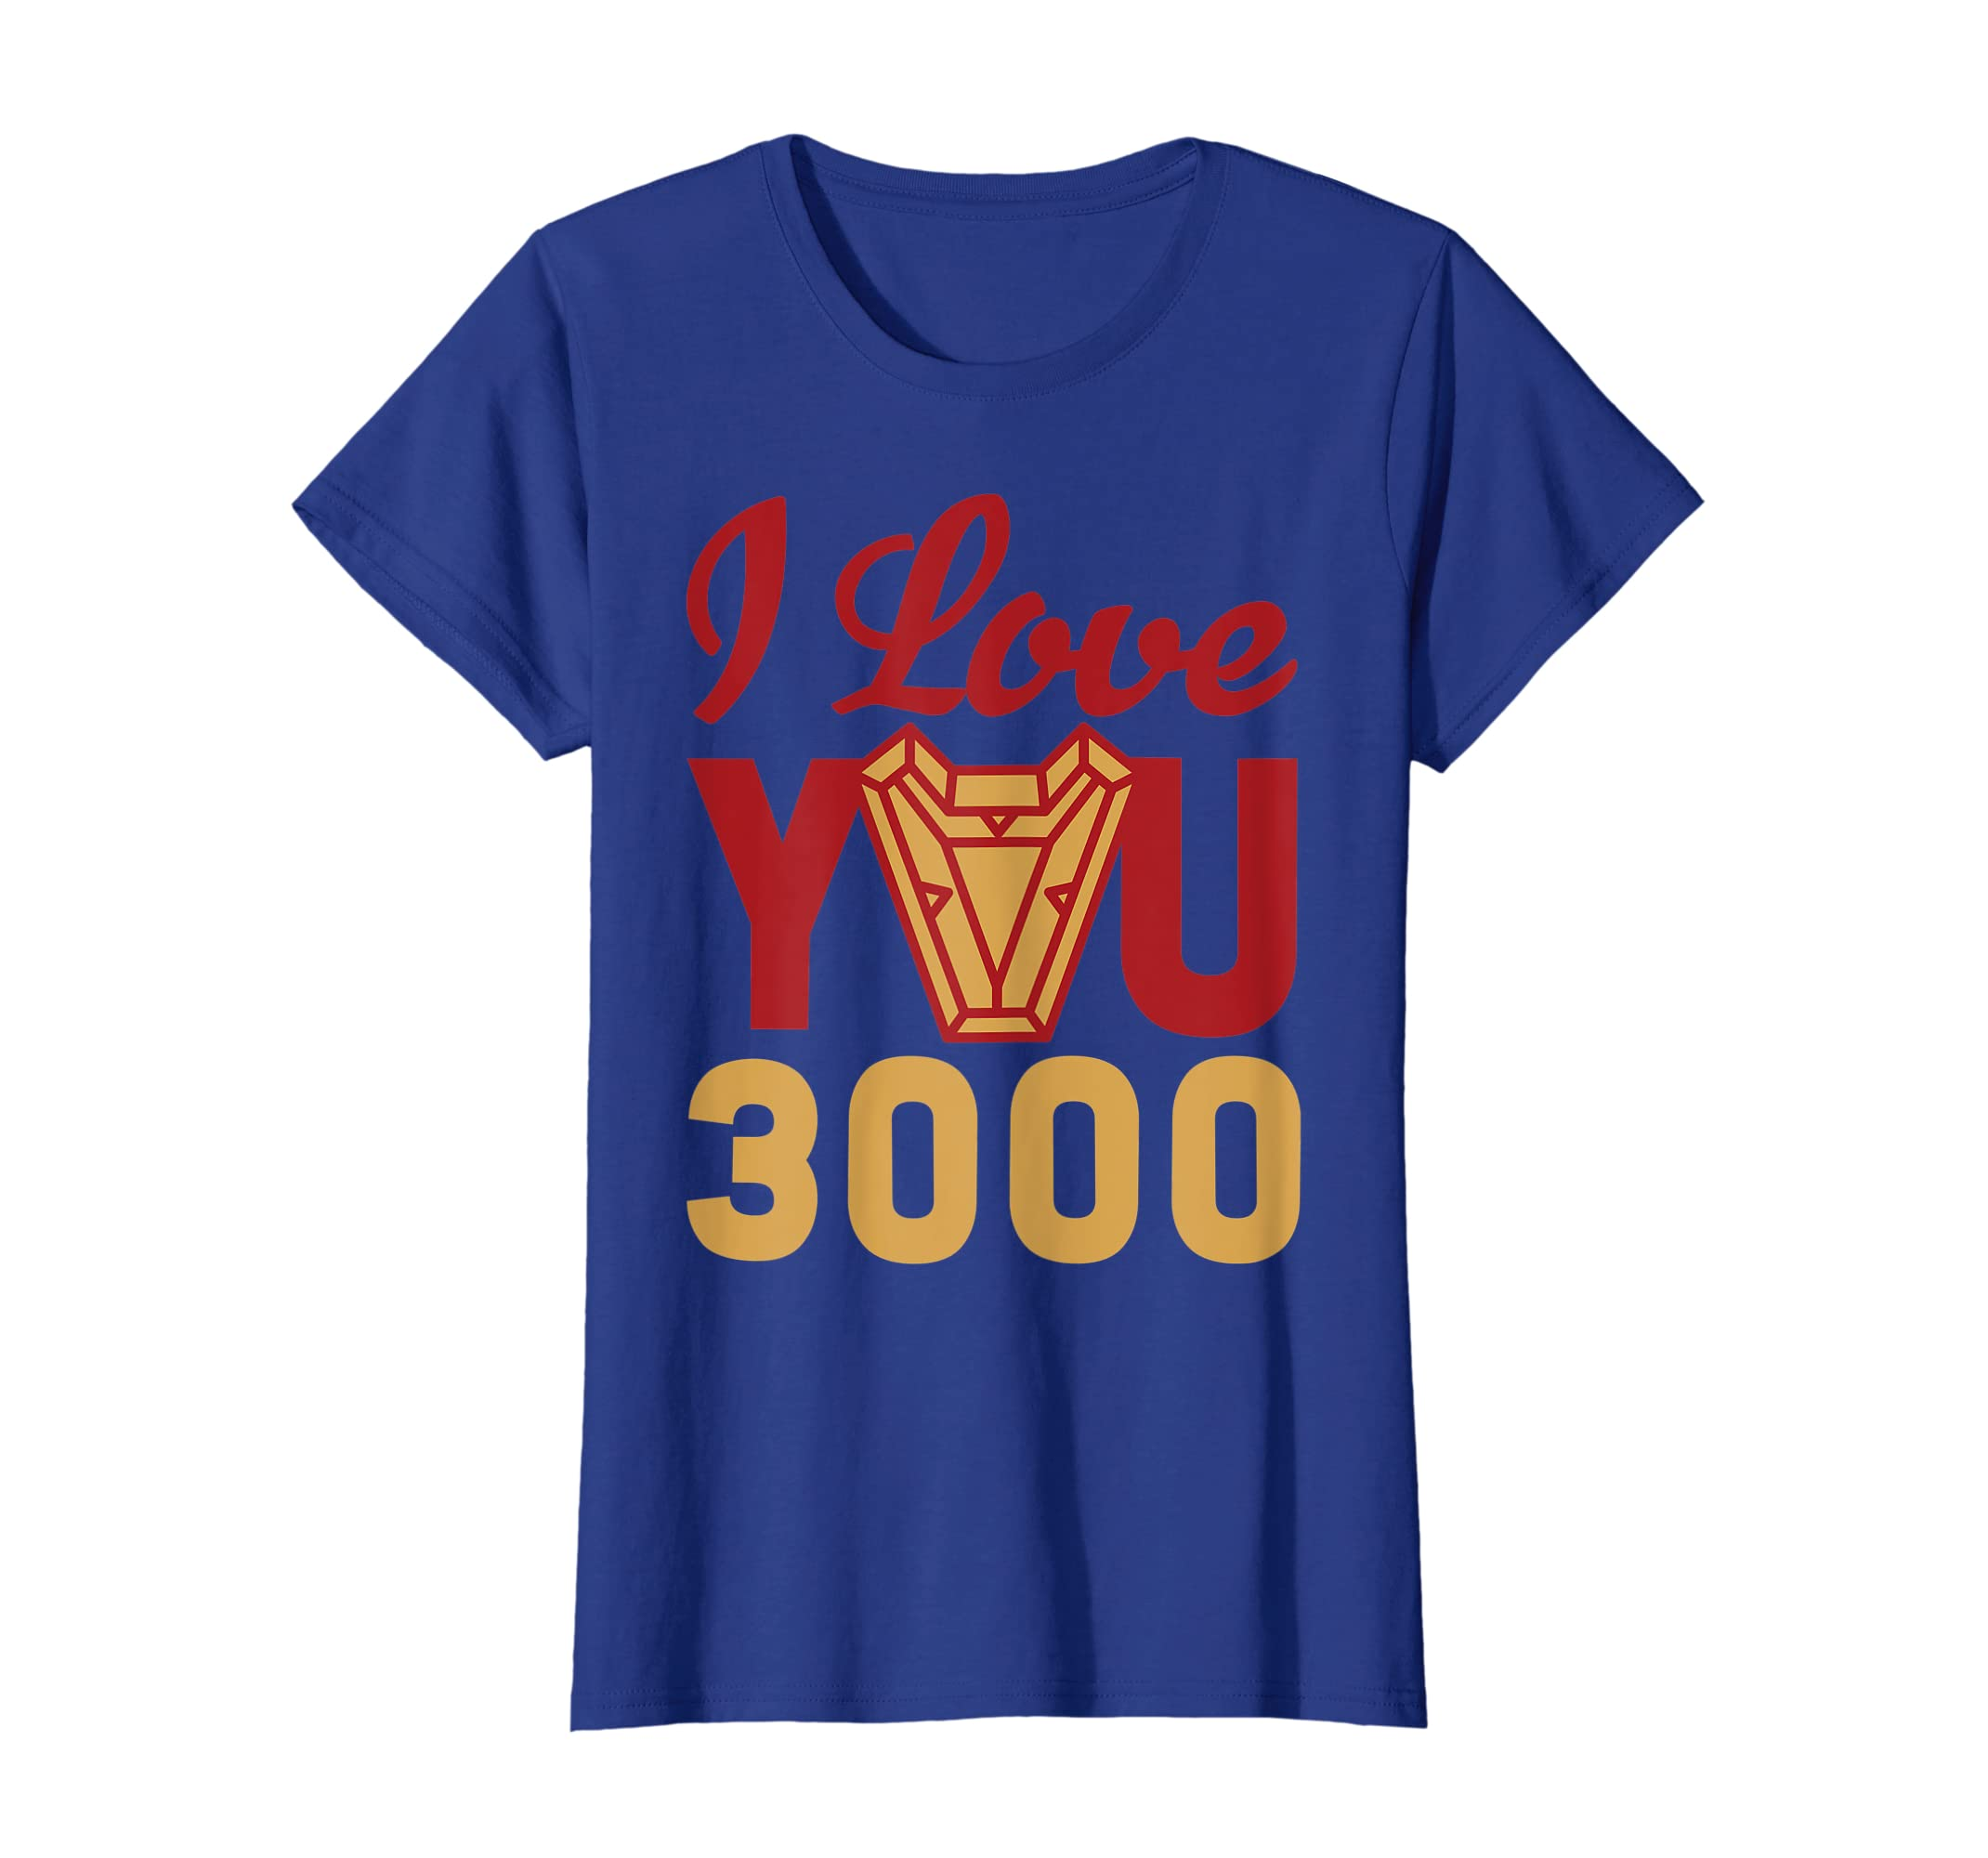 6f9b62a6 Amazon.com: Avengers Endgame Iron Man I Love You 3000 Red Yellow Logo  T-Shirt: Clothing